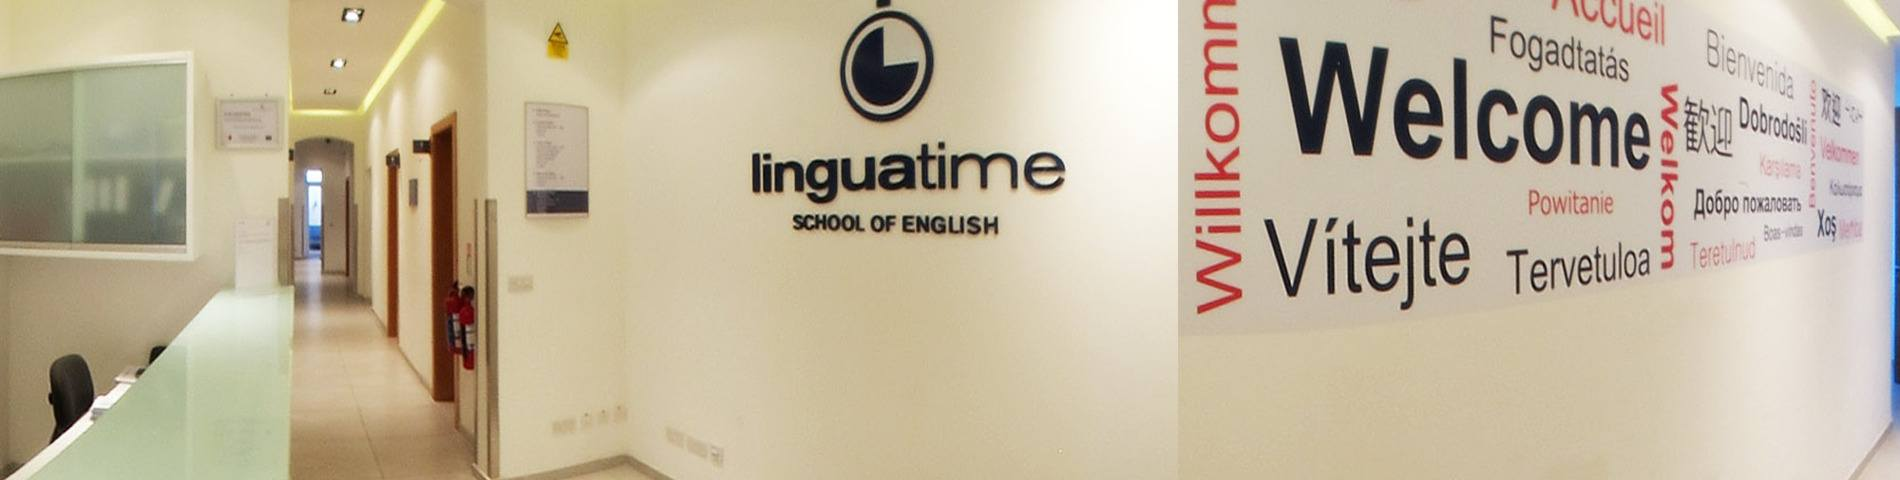 Linguatime School of English bild 1